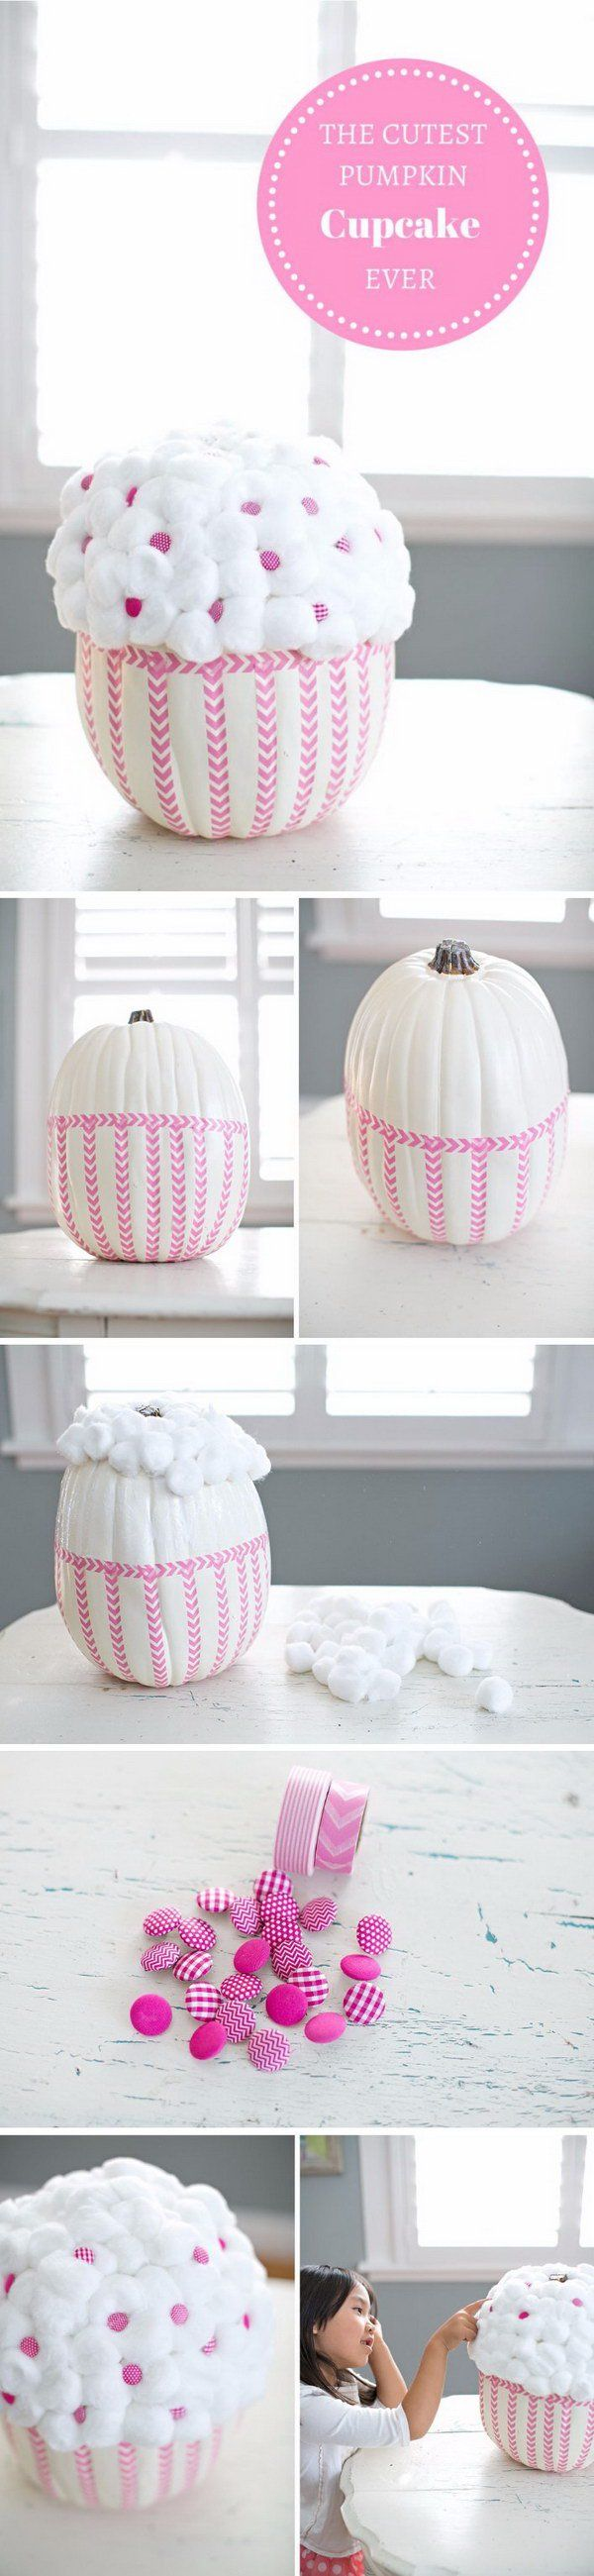 40+ Cool No-Carve Pumpkin Decorating Ideas